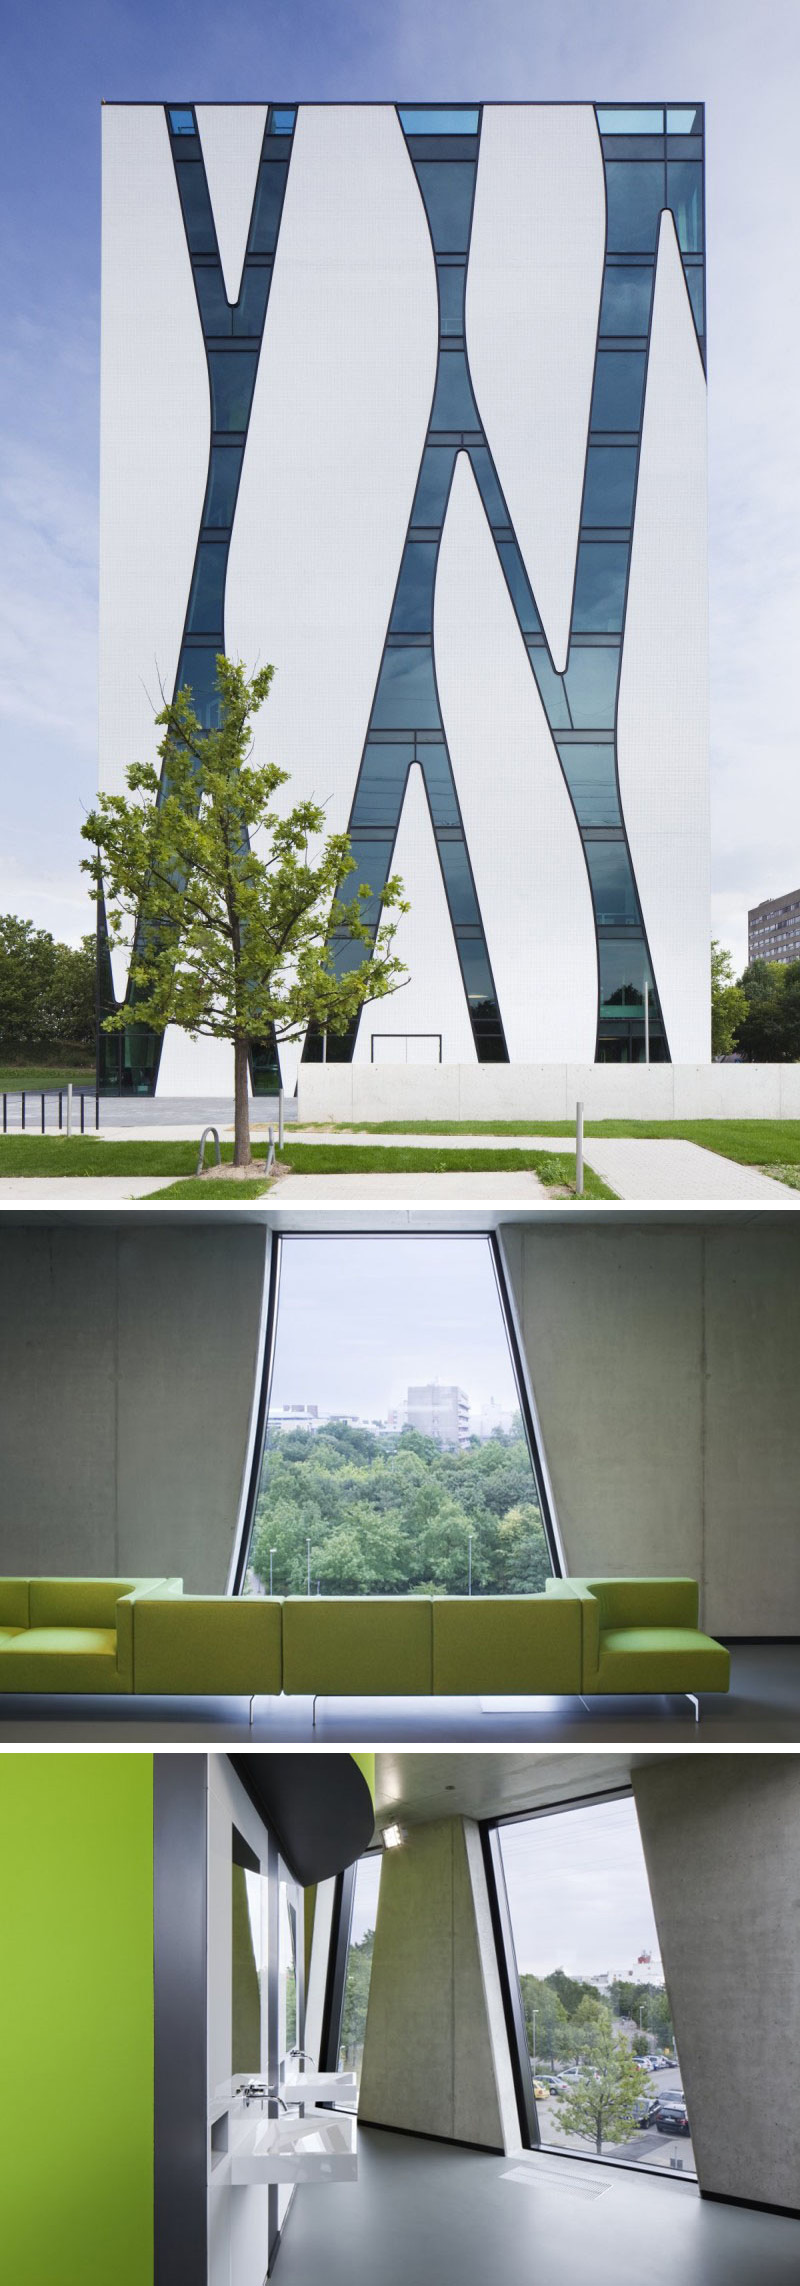 The white exterior of this modern library is made more unique by the elongated windows, connected by strips of glass, that line the building.